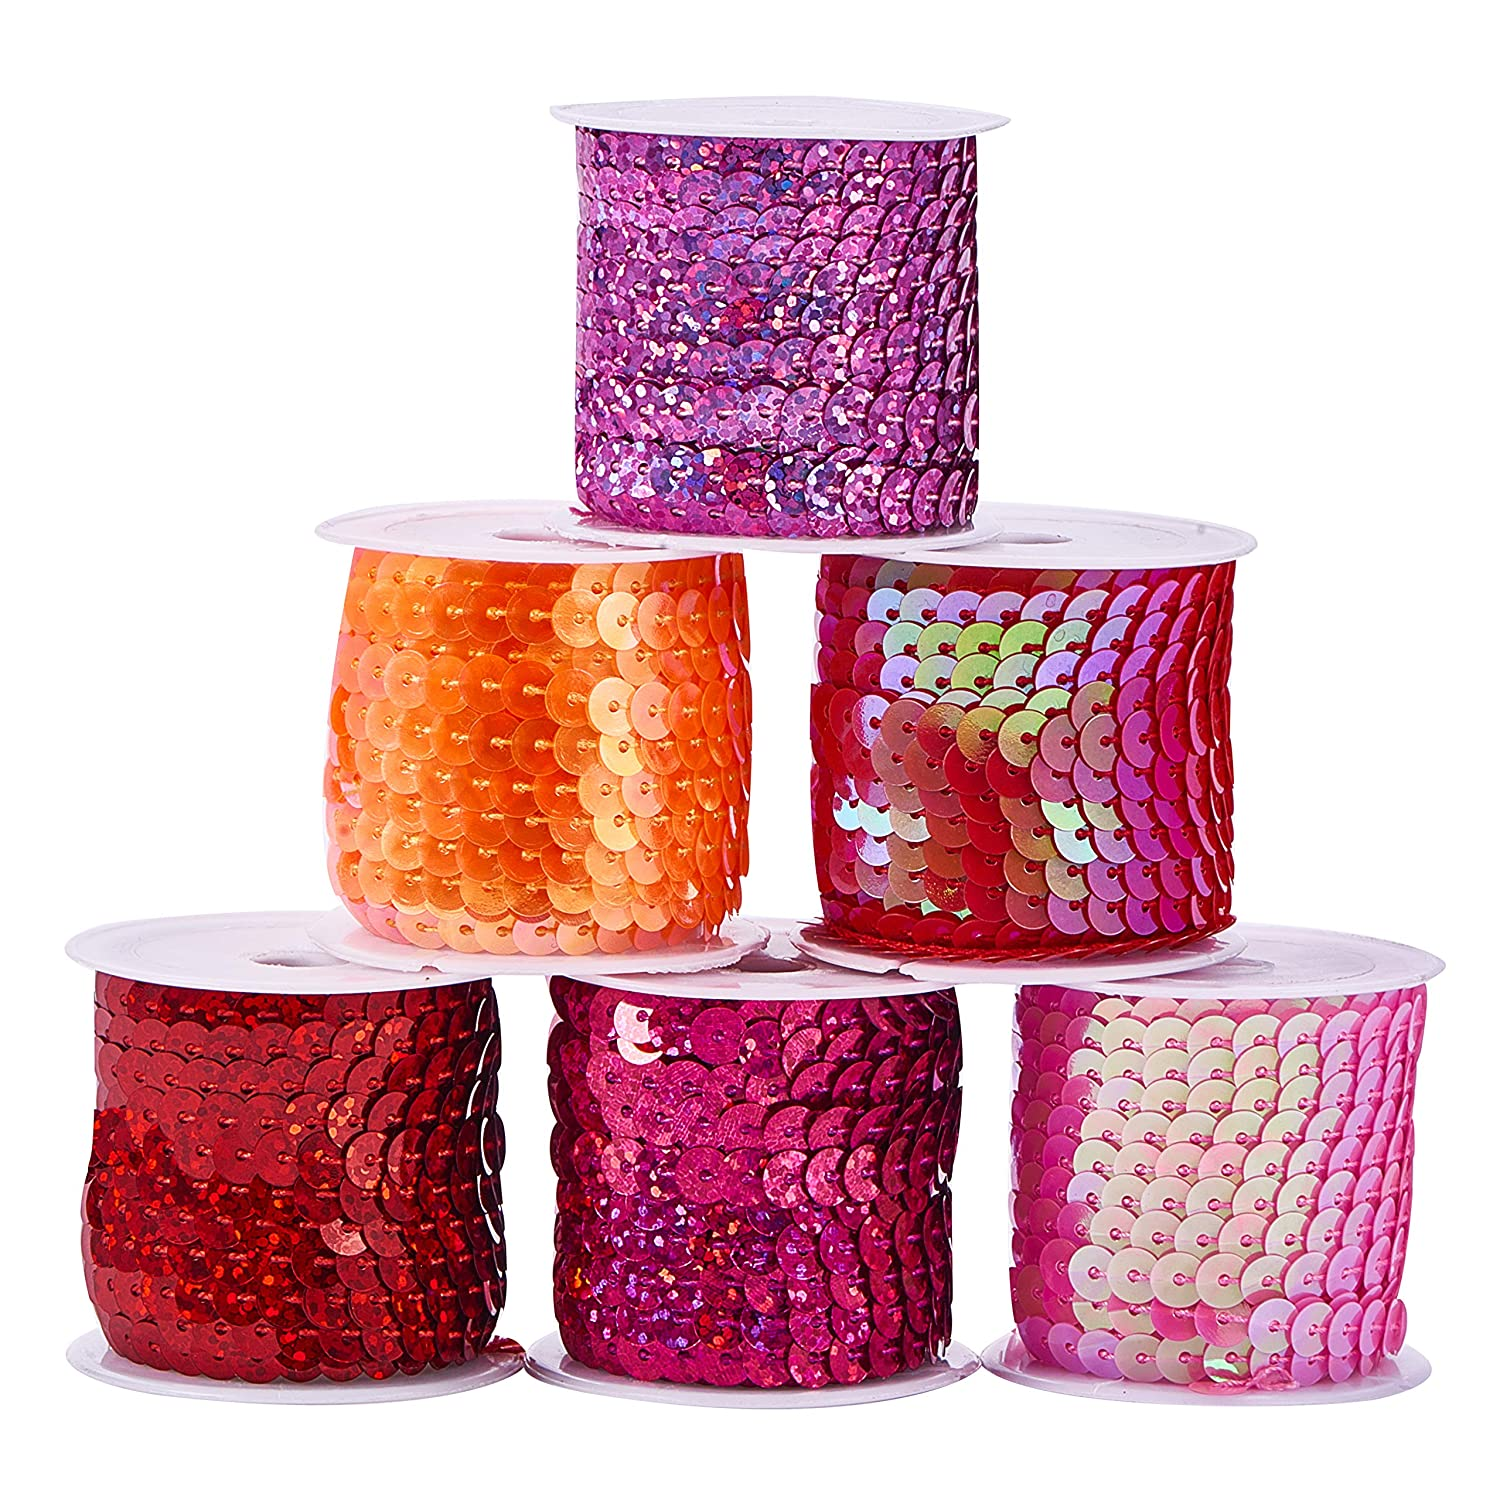 PandaHall Elite 30 Rolls 30 Color Spangle Flat Sequins Paillette Trim Spool String 6mm (1/4 Inch) Sequins PH PandaHall wh-PVC-PH002-01